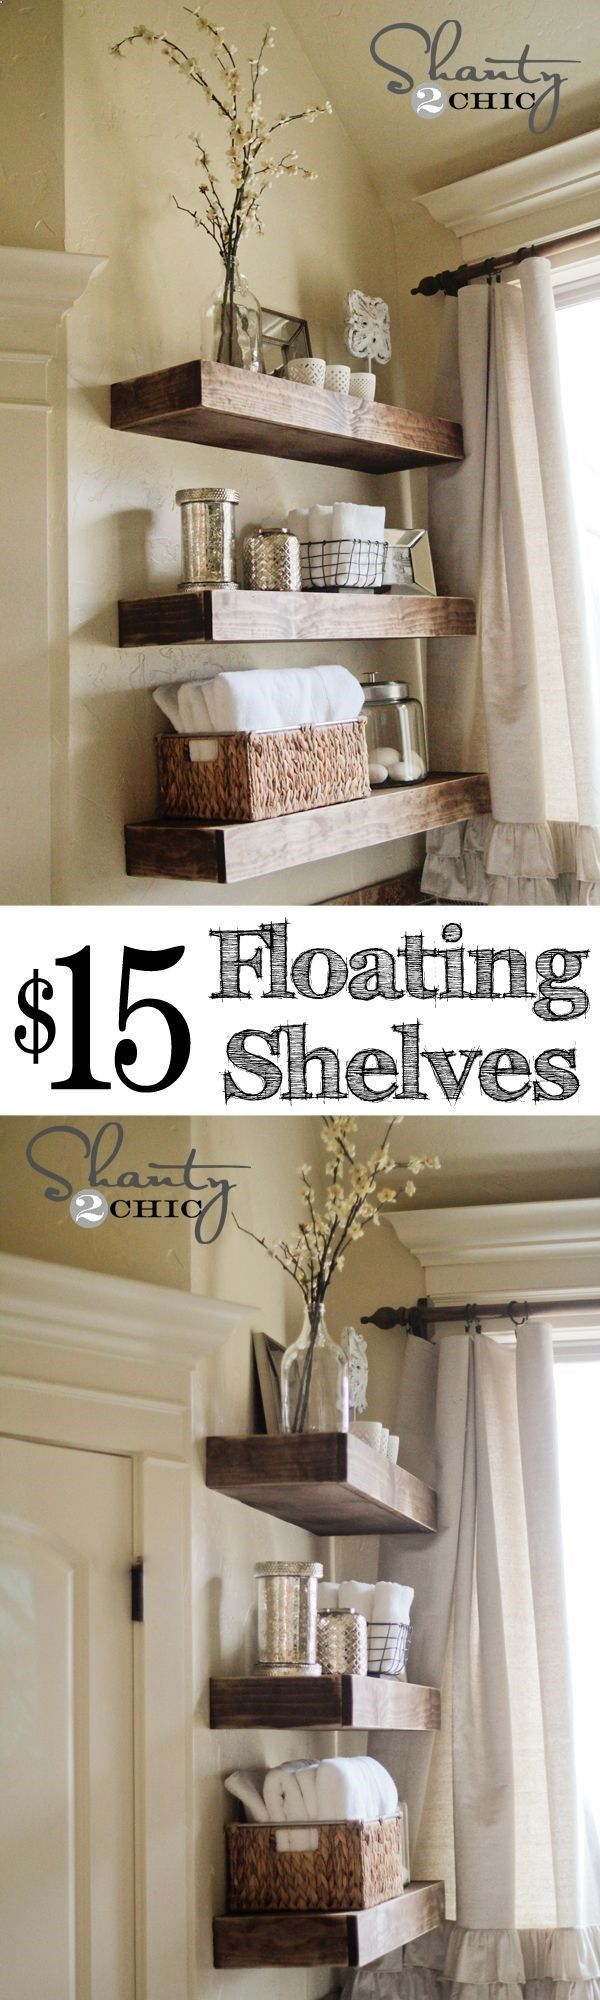 diy floating shelves - Google Search